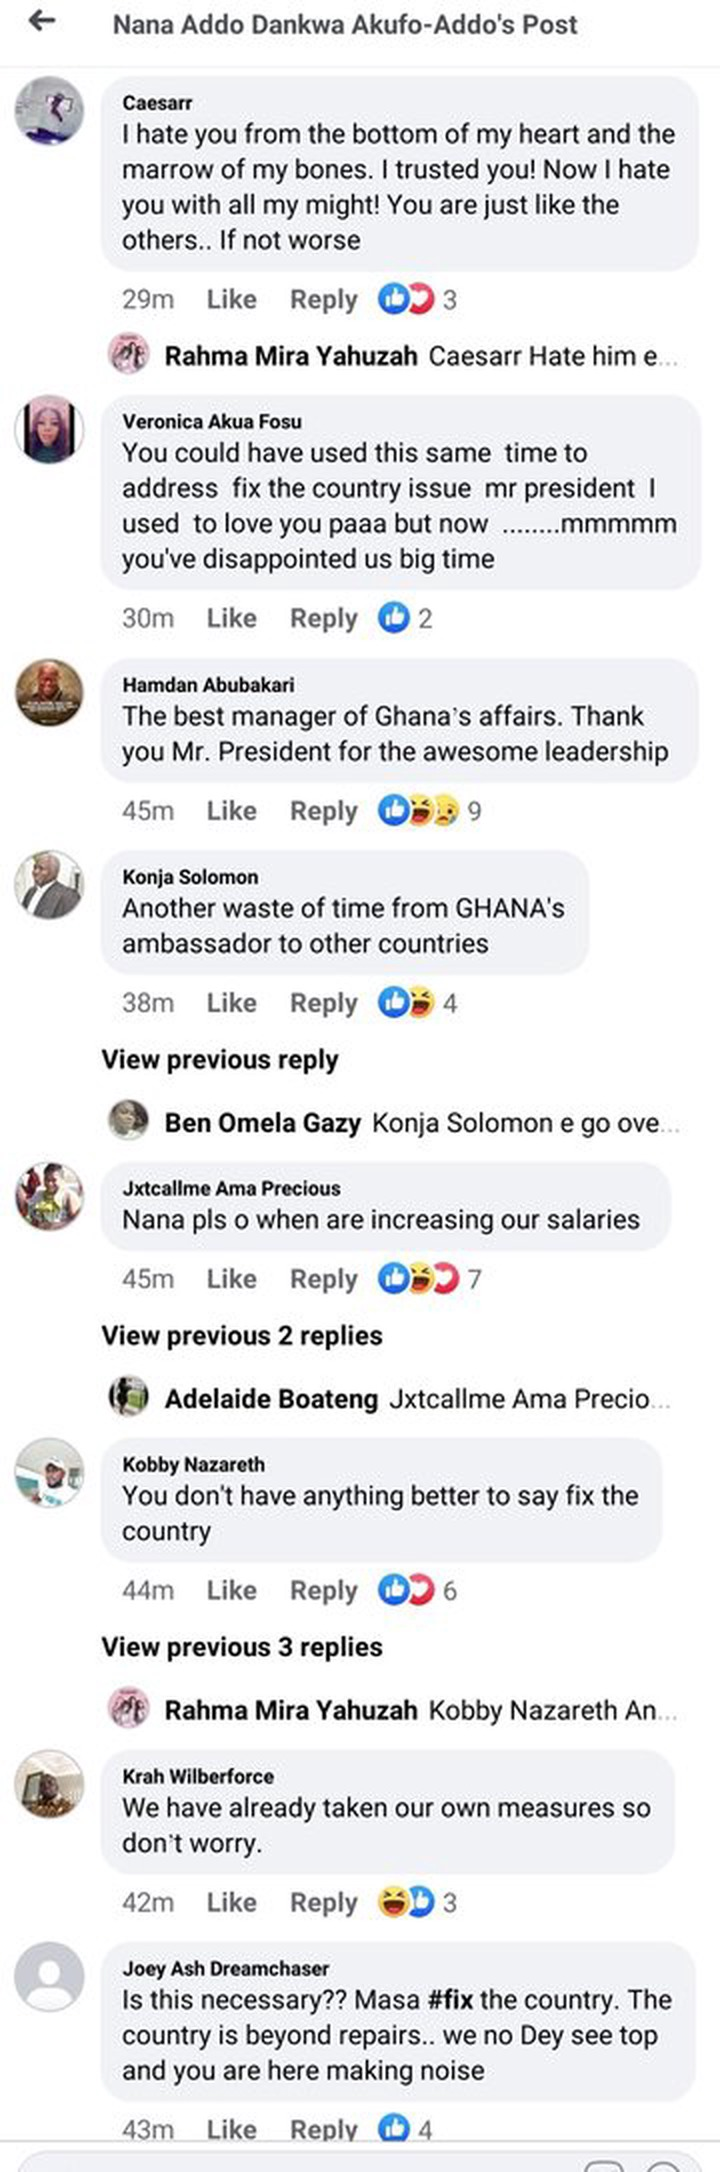 6aa6bad6c517d9e54d41716c9dd323e7 5?source=nlp&quality=uhq&format=jpeg&resize=720 - FixTheCountry: We Dont Need This Address - Ghanaians React To 25th COVID-19 Address